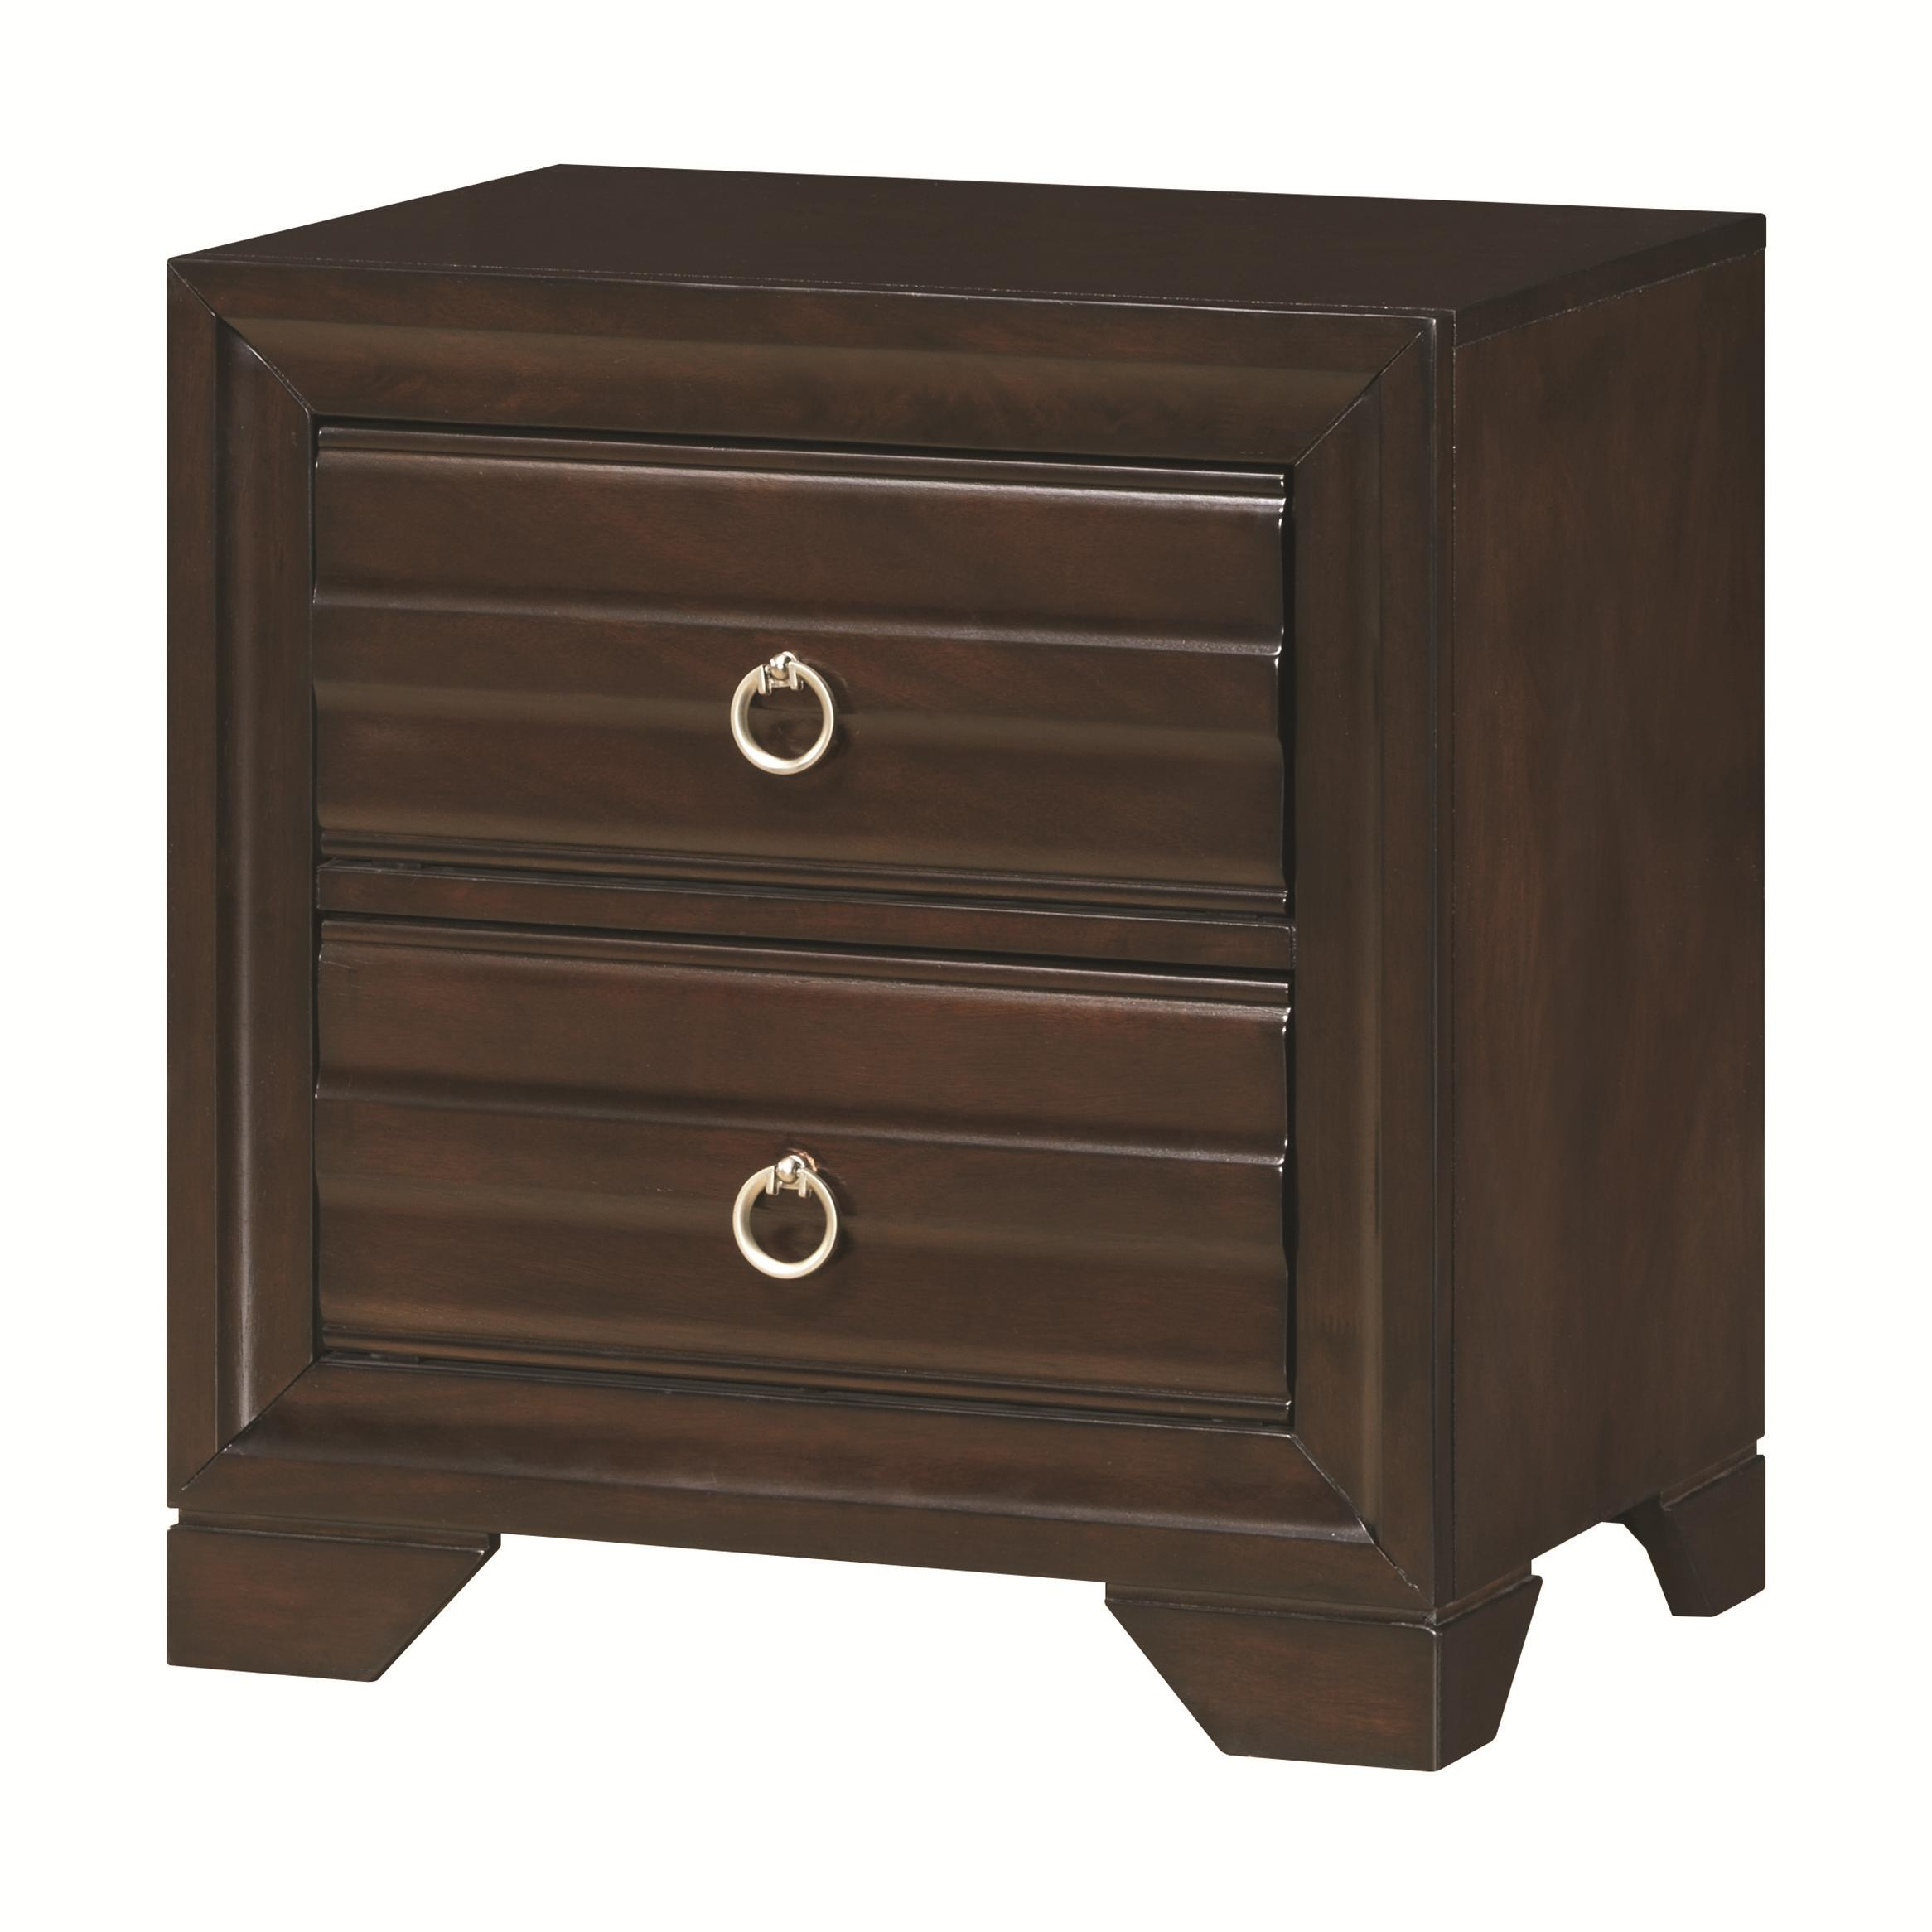 Coaster Bryce 20347 Night Stand - Item Number: 203472